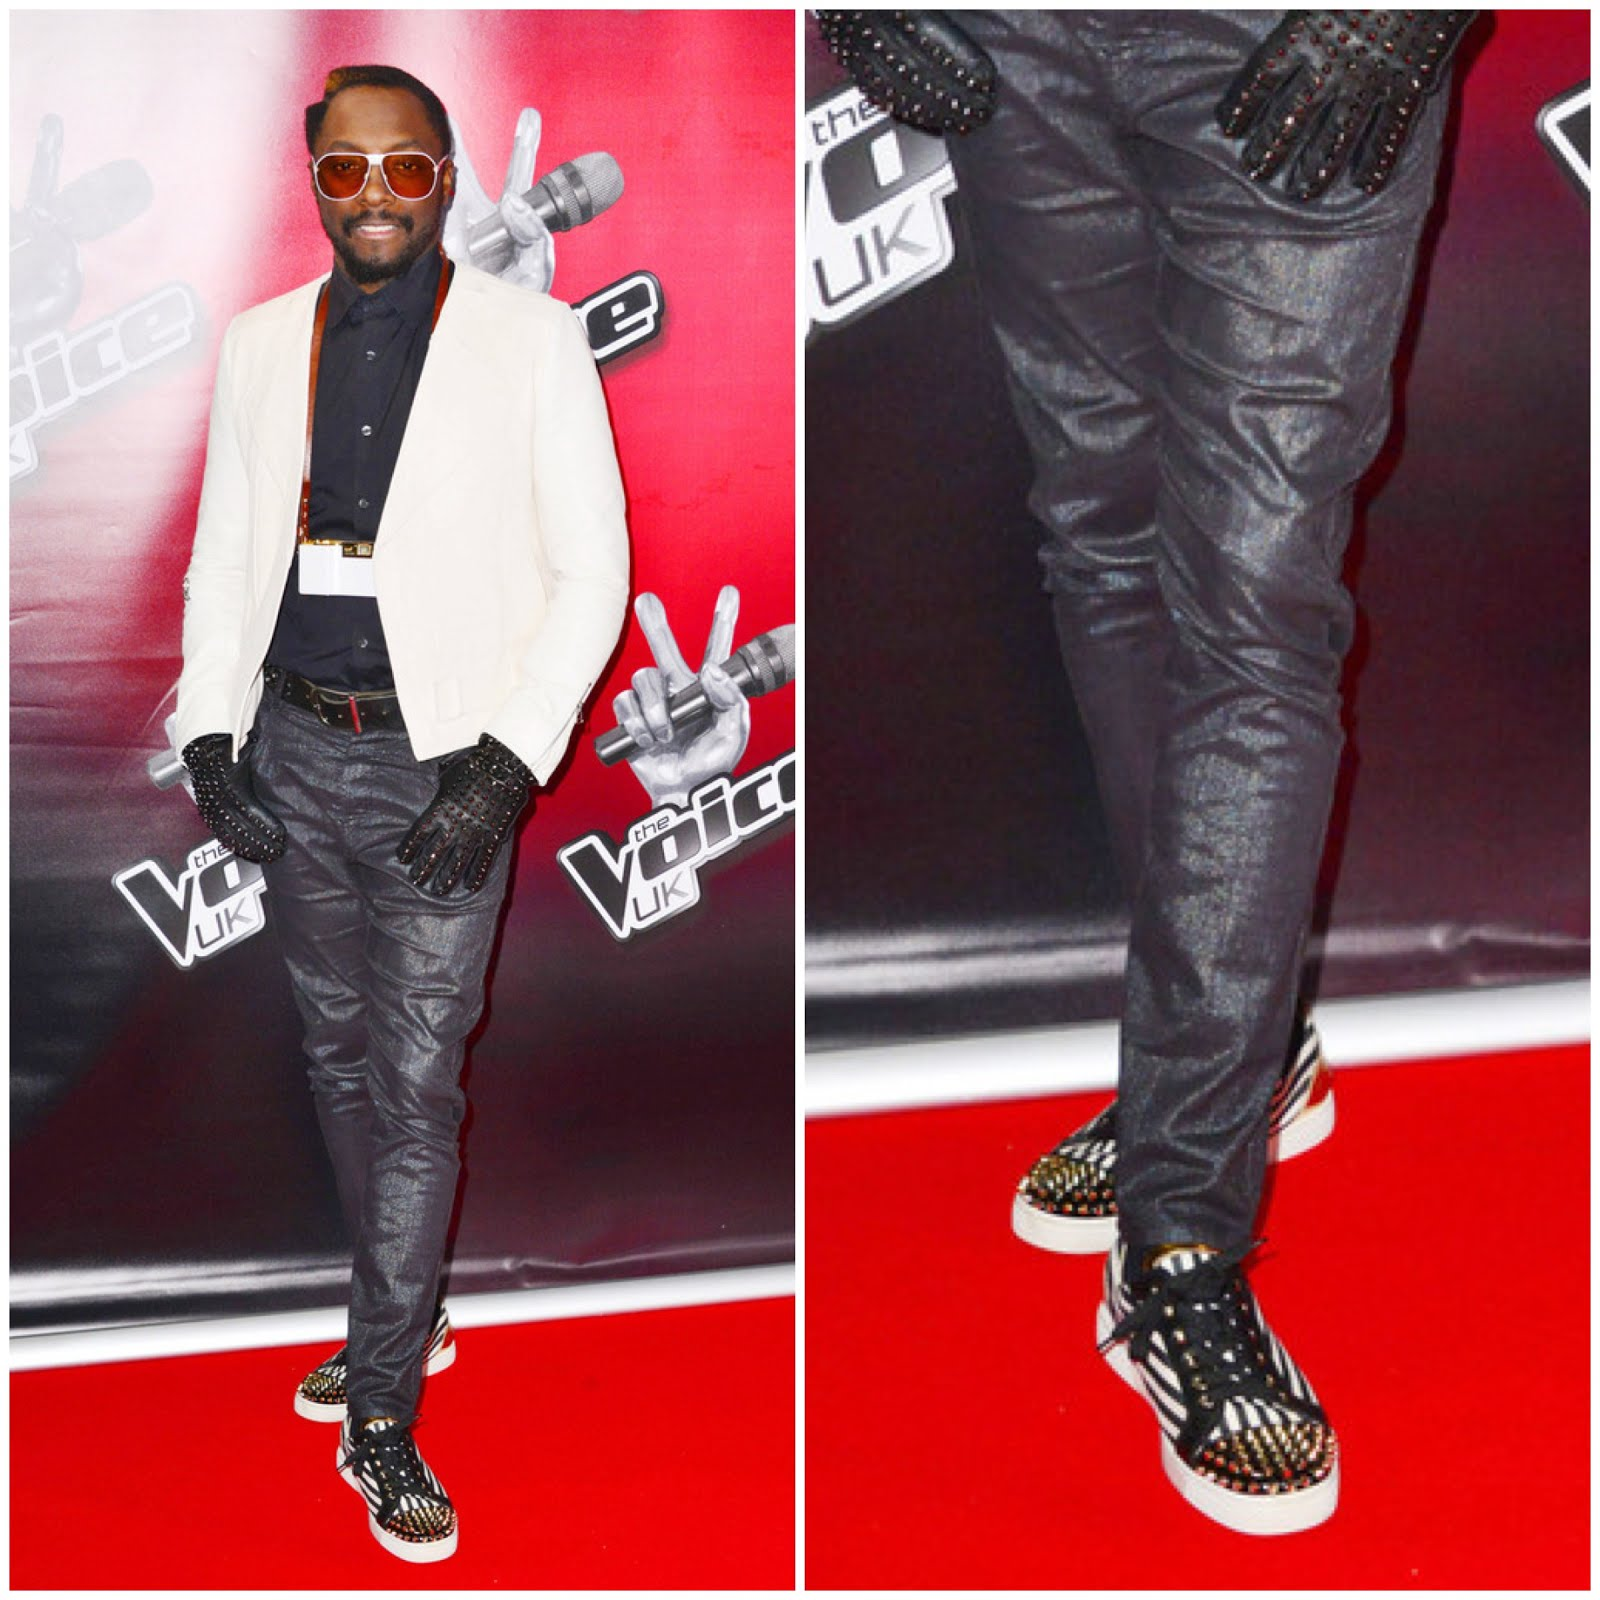 00O00 Menswear Blog Will.i.am attends a photocall to launch the second series of 'The Voice' at Soho Hotel in London, March 11, 2013. Will.i.am wore Christian Louboutin Louis flat junior spikes sneakers